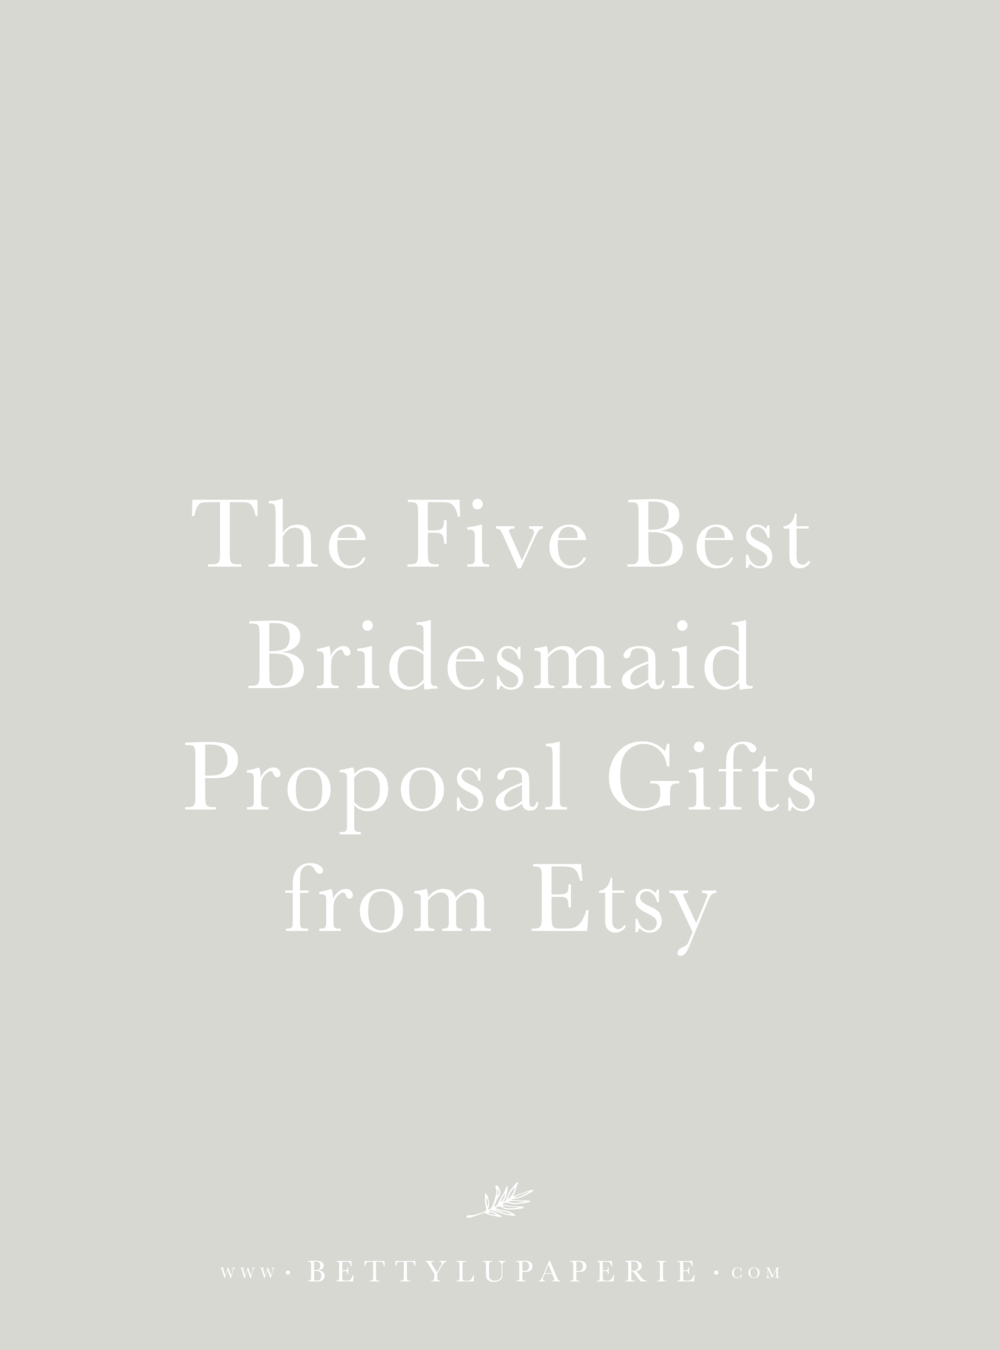 Bridesmaid Proposal Gifts.png